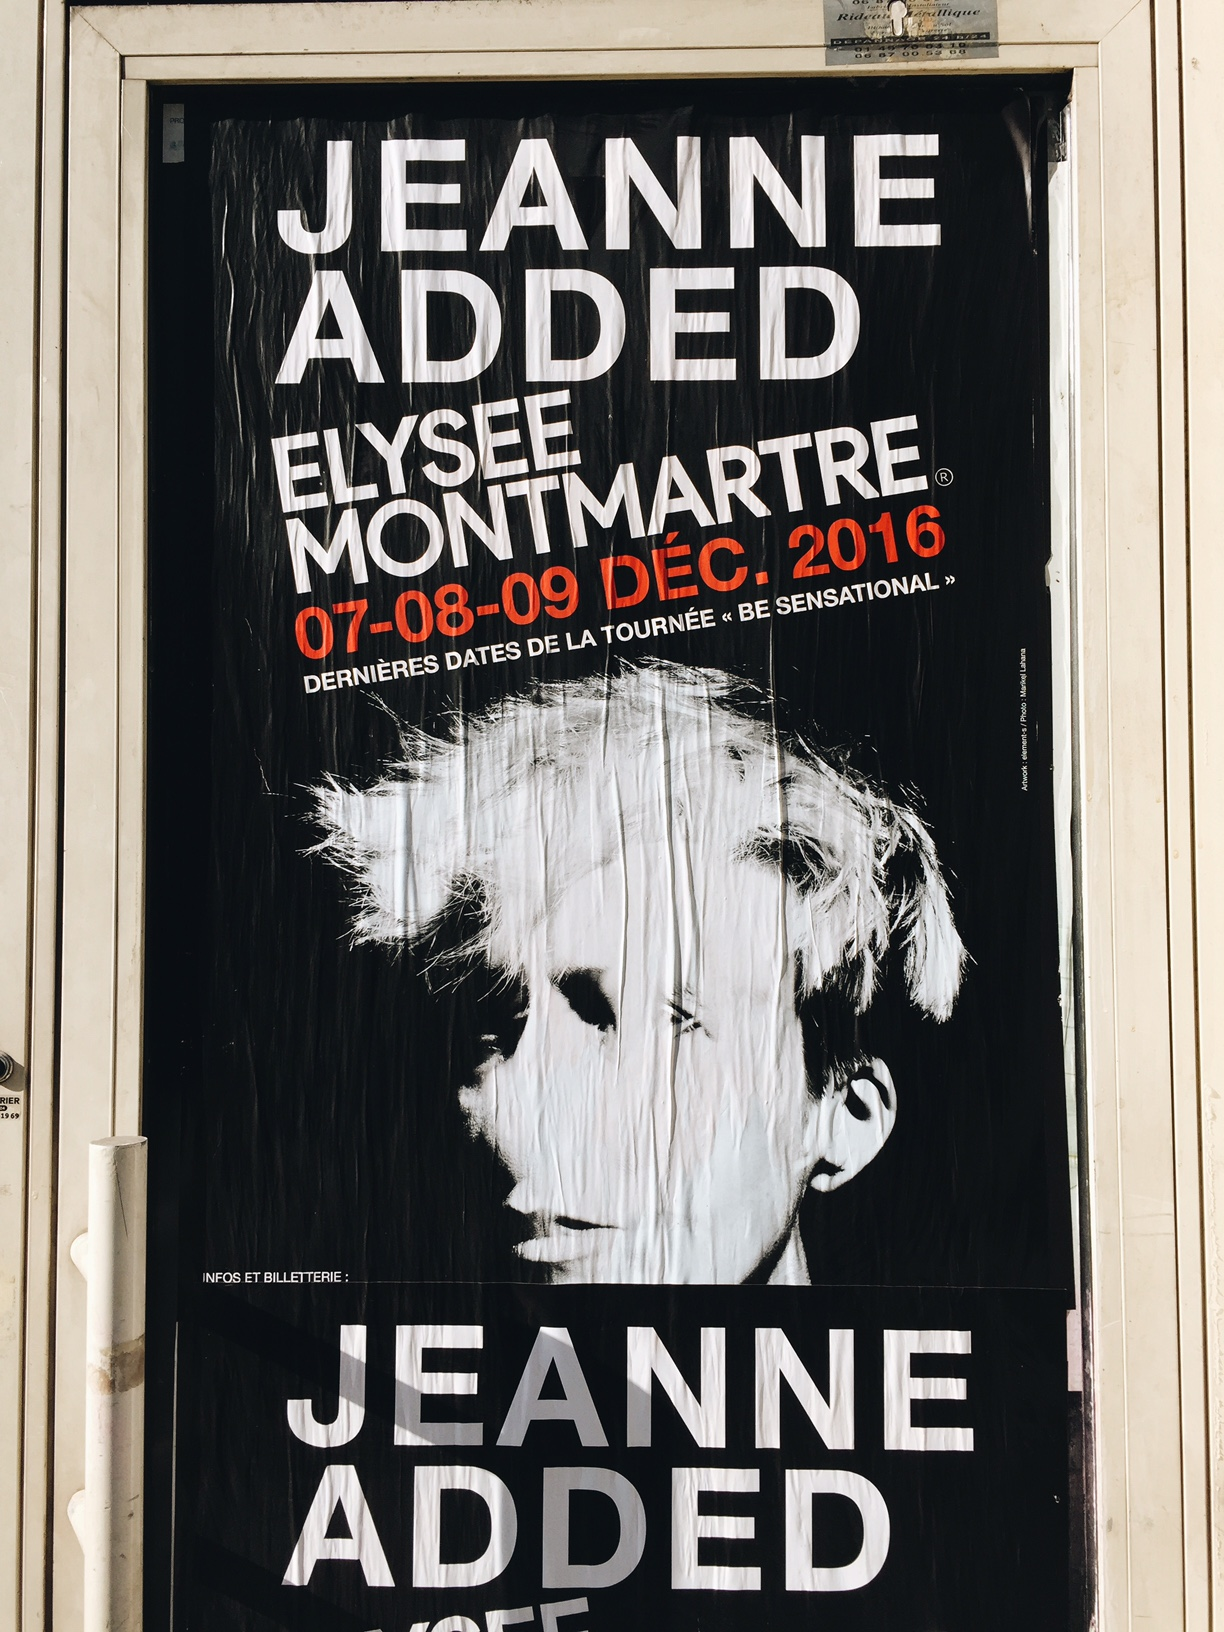 Jeanne-Added-en-concert-Elysée-Montmartre-Paris-7-8-et-9-décembre-2016-tournée-be-sensational-affiche-photo-usofparis-blog